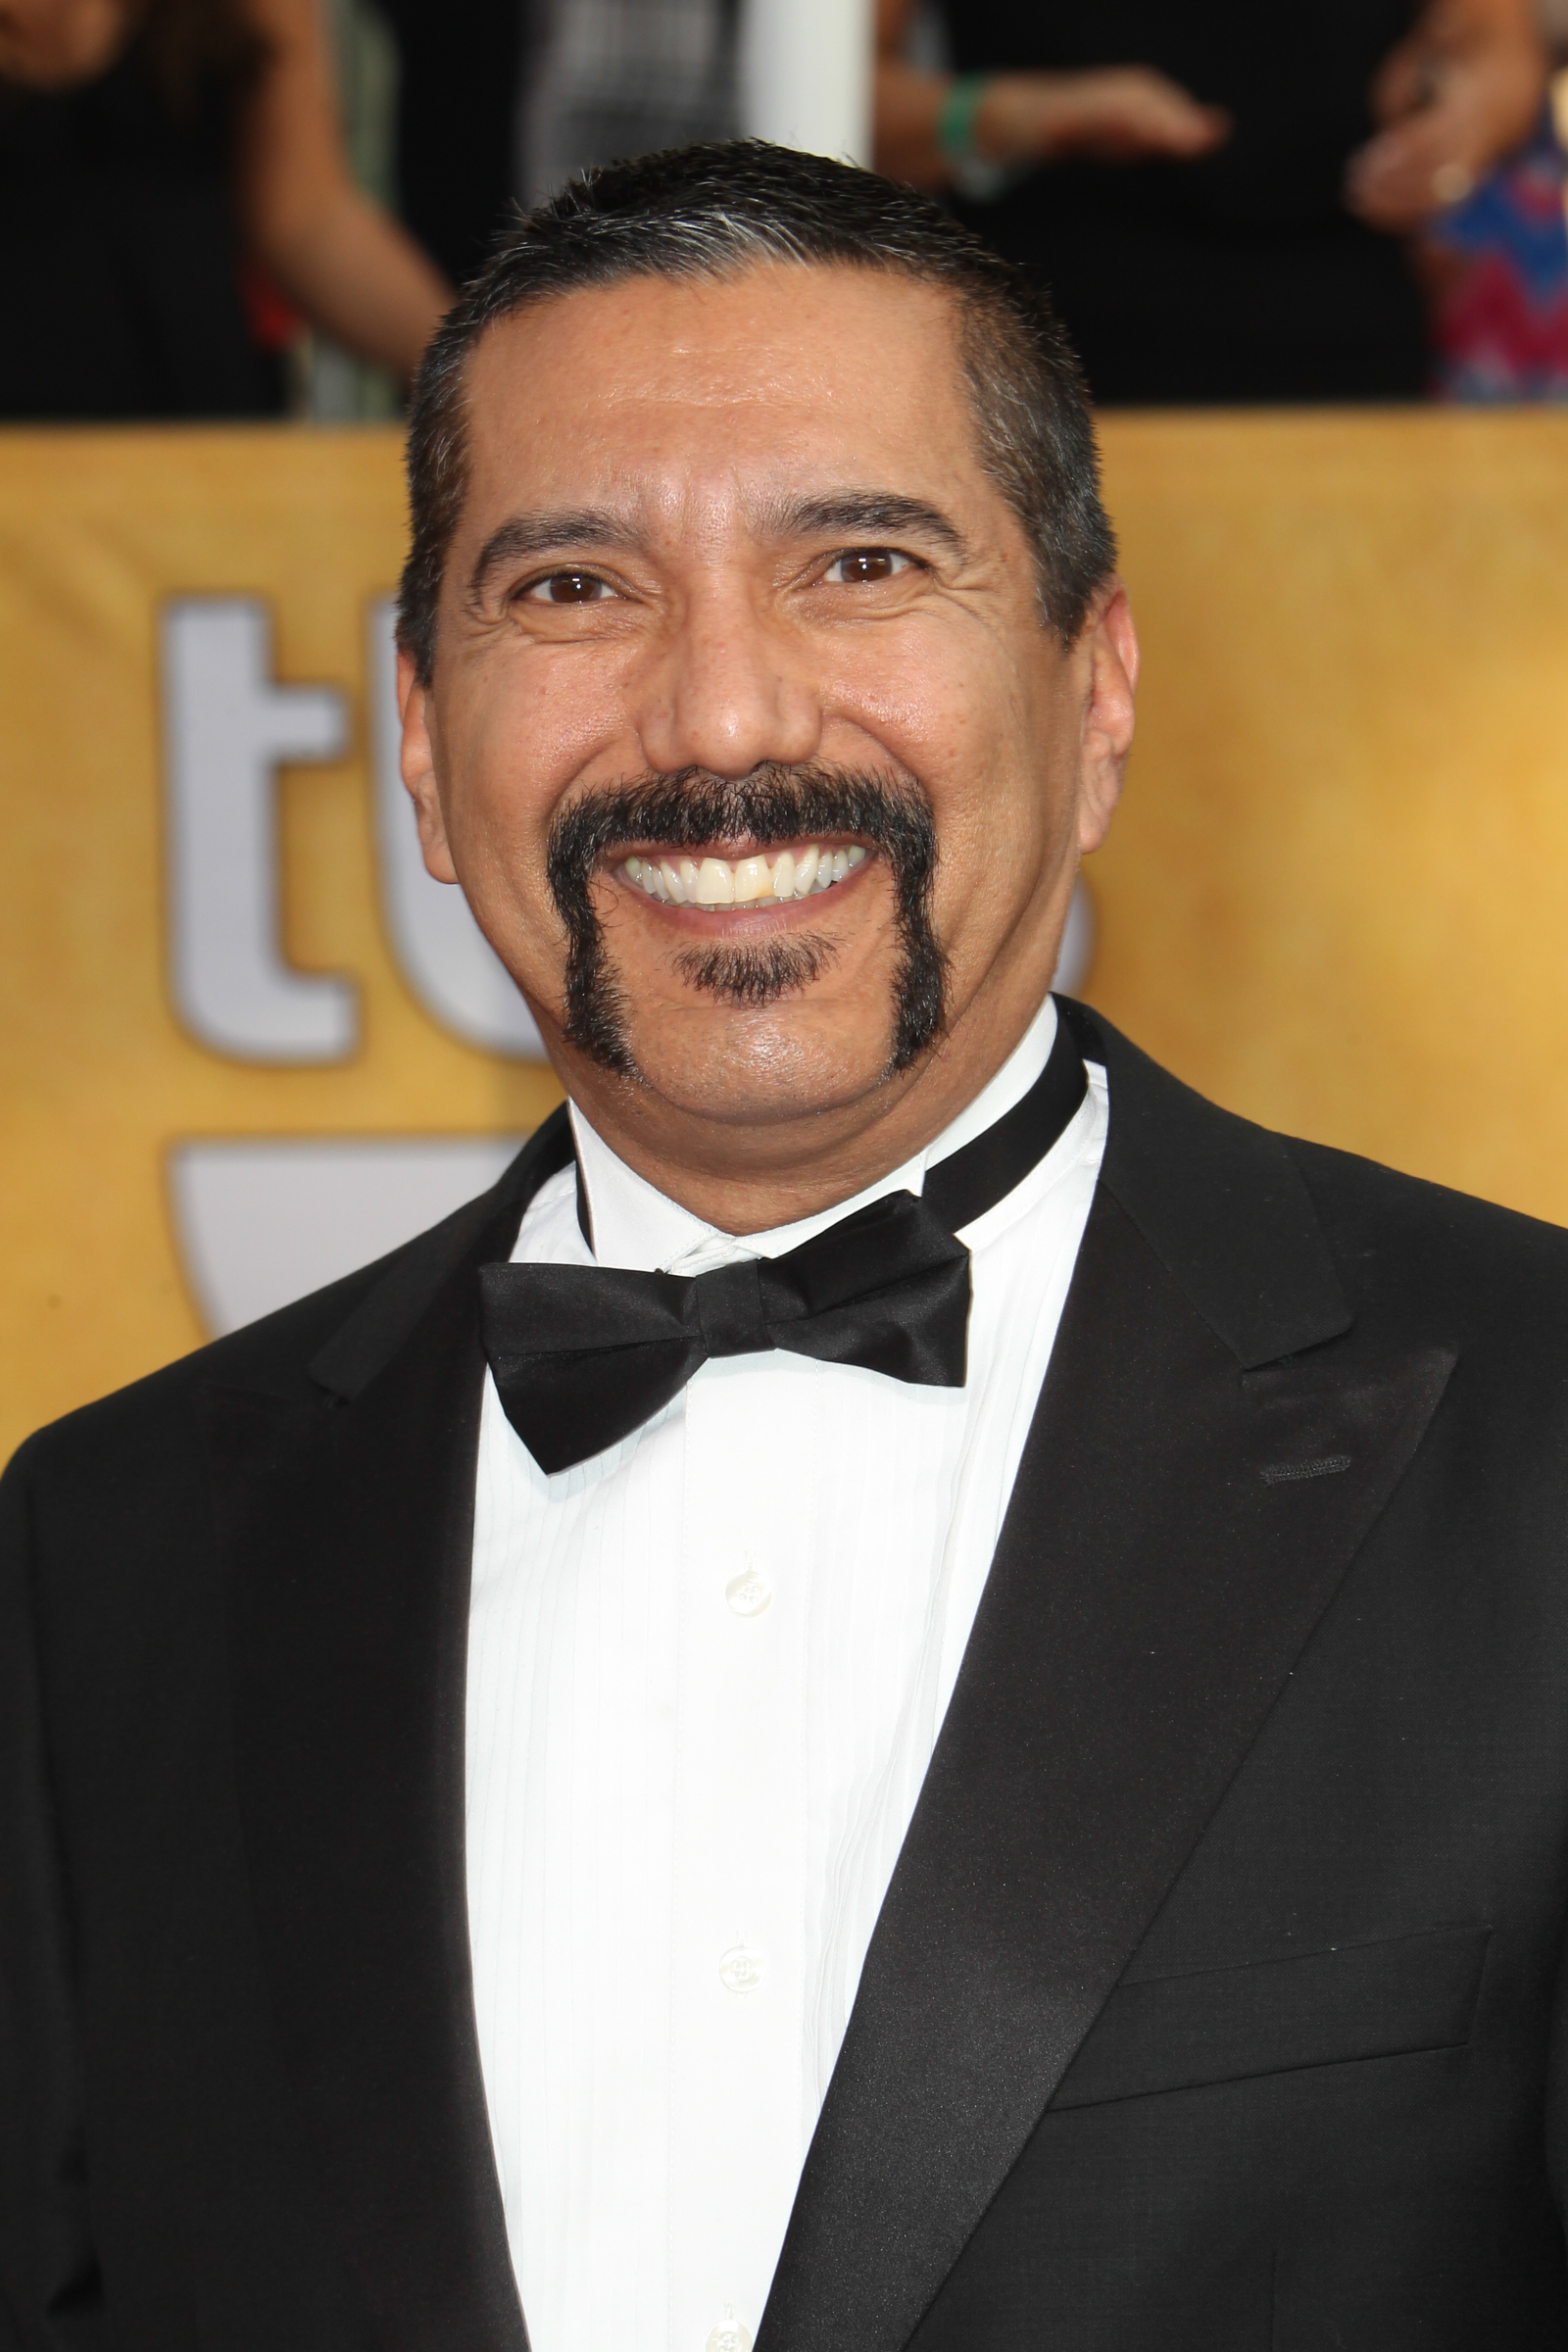 20th Annual Screen Actors Guild Awards at The Shrine - Arrivals                  California                                    Featuring: Steven Michael Quezada                  Where: West Hollywood, California, United States                  When: 18 Jan 2014                  Credit: FayesVision/WENN.com